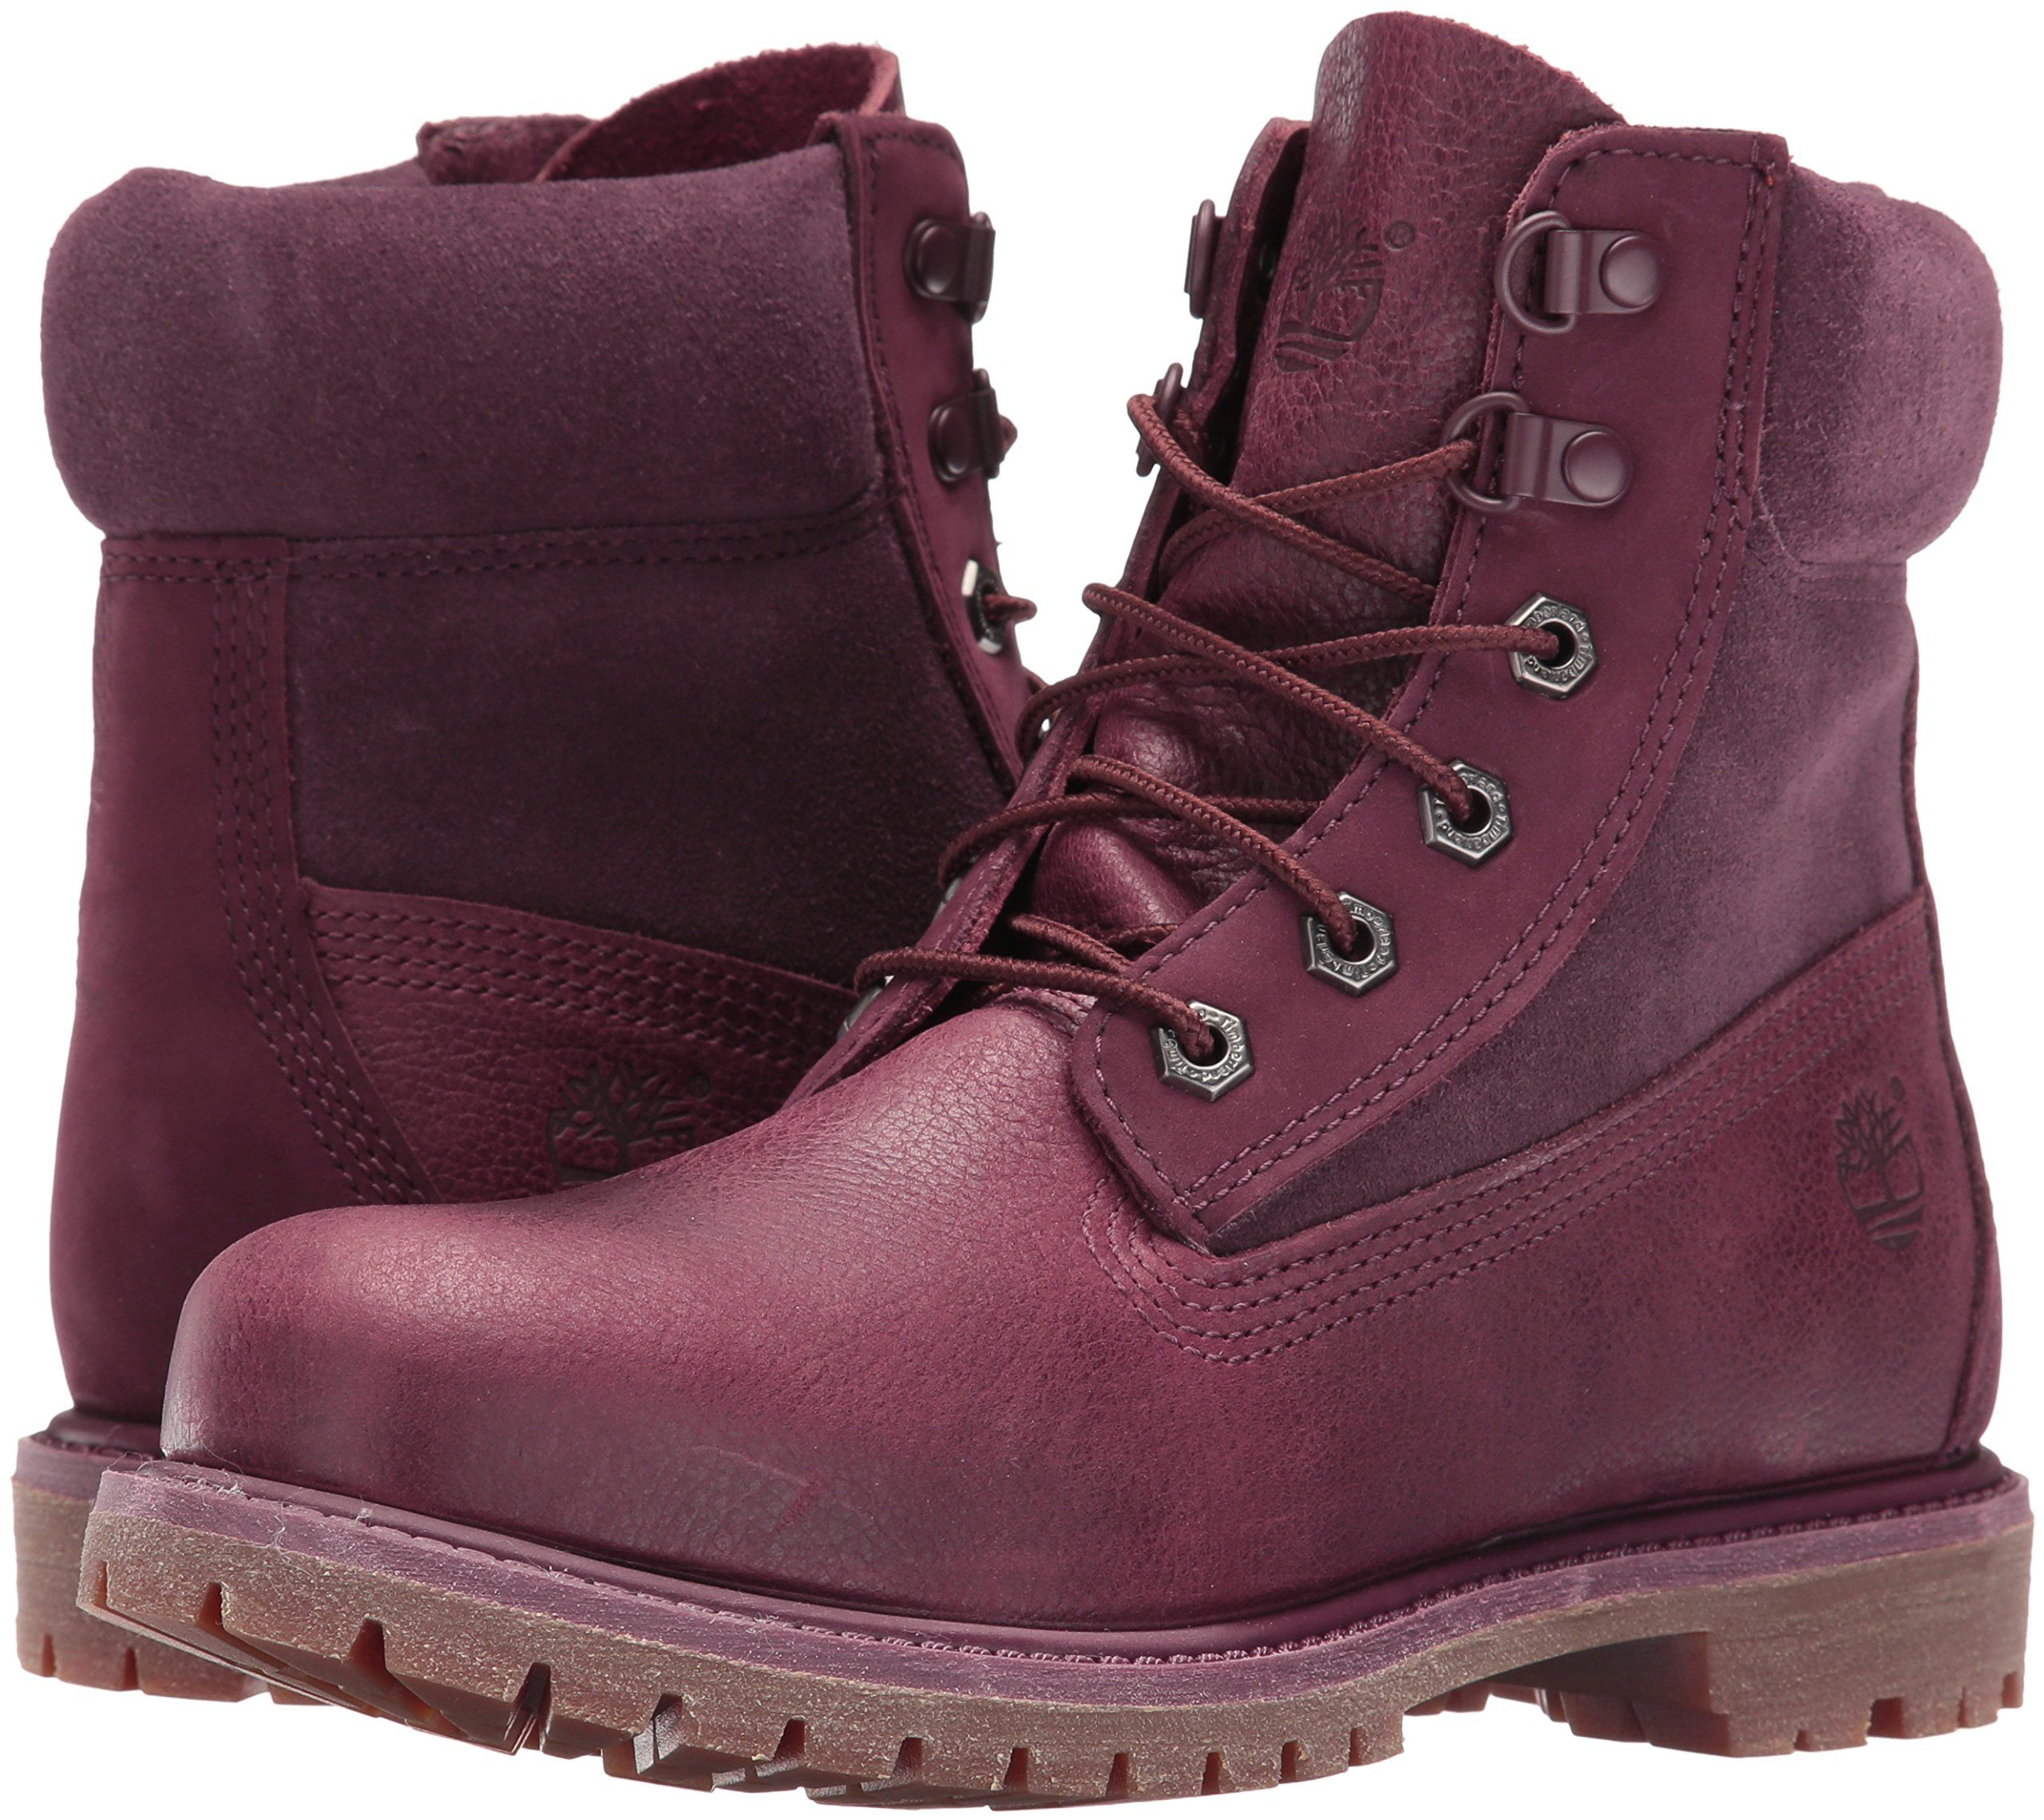 Inch Timberland Wp Womens 6 Boot Dark Premium Double Dring OPwkXTlZiu